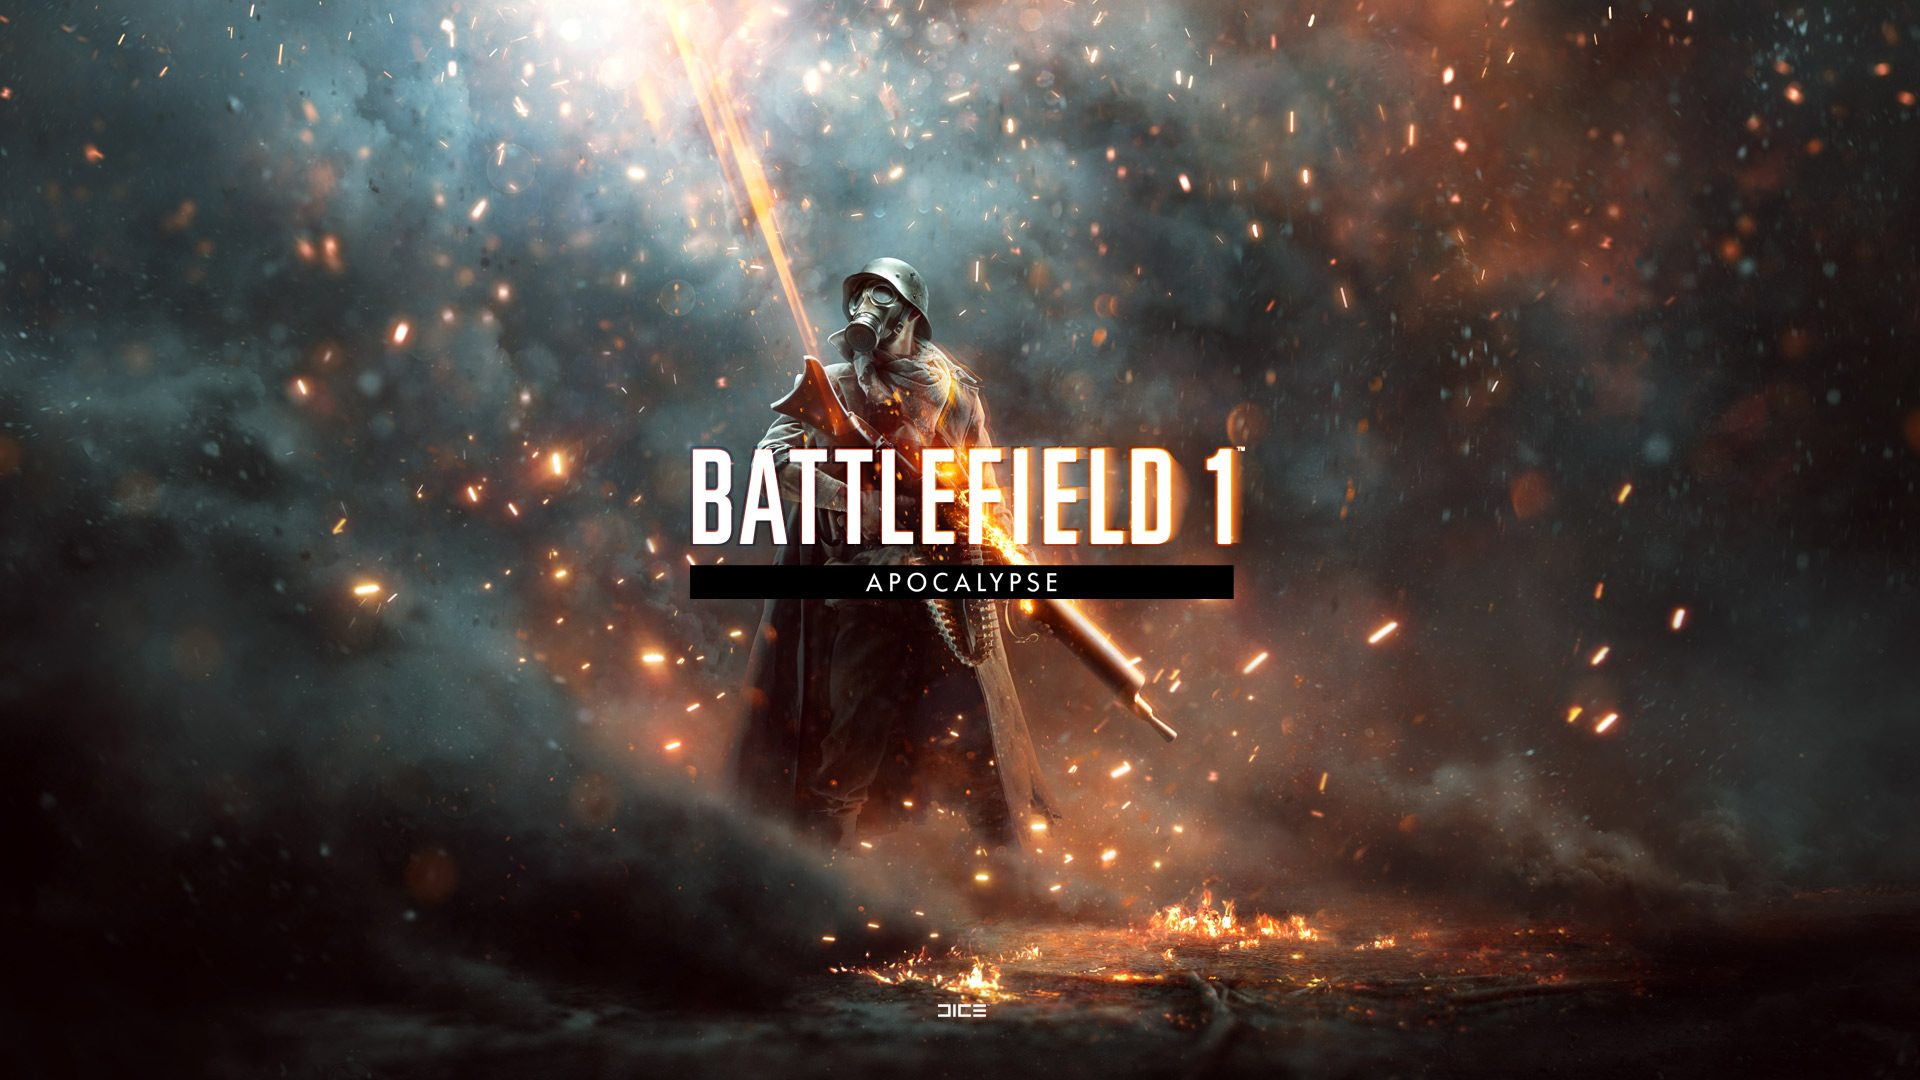 Two Men Fighting Game Digital Wallpaper Battlefield 1